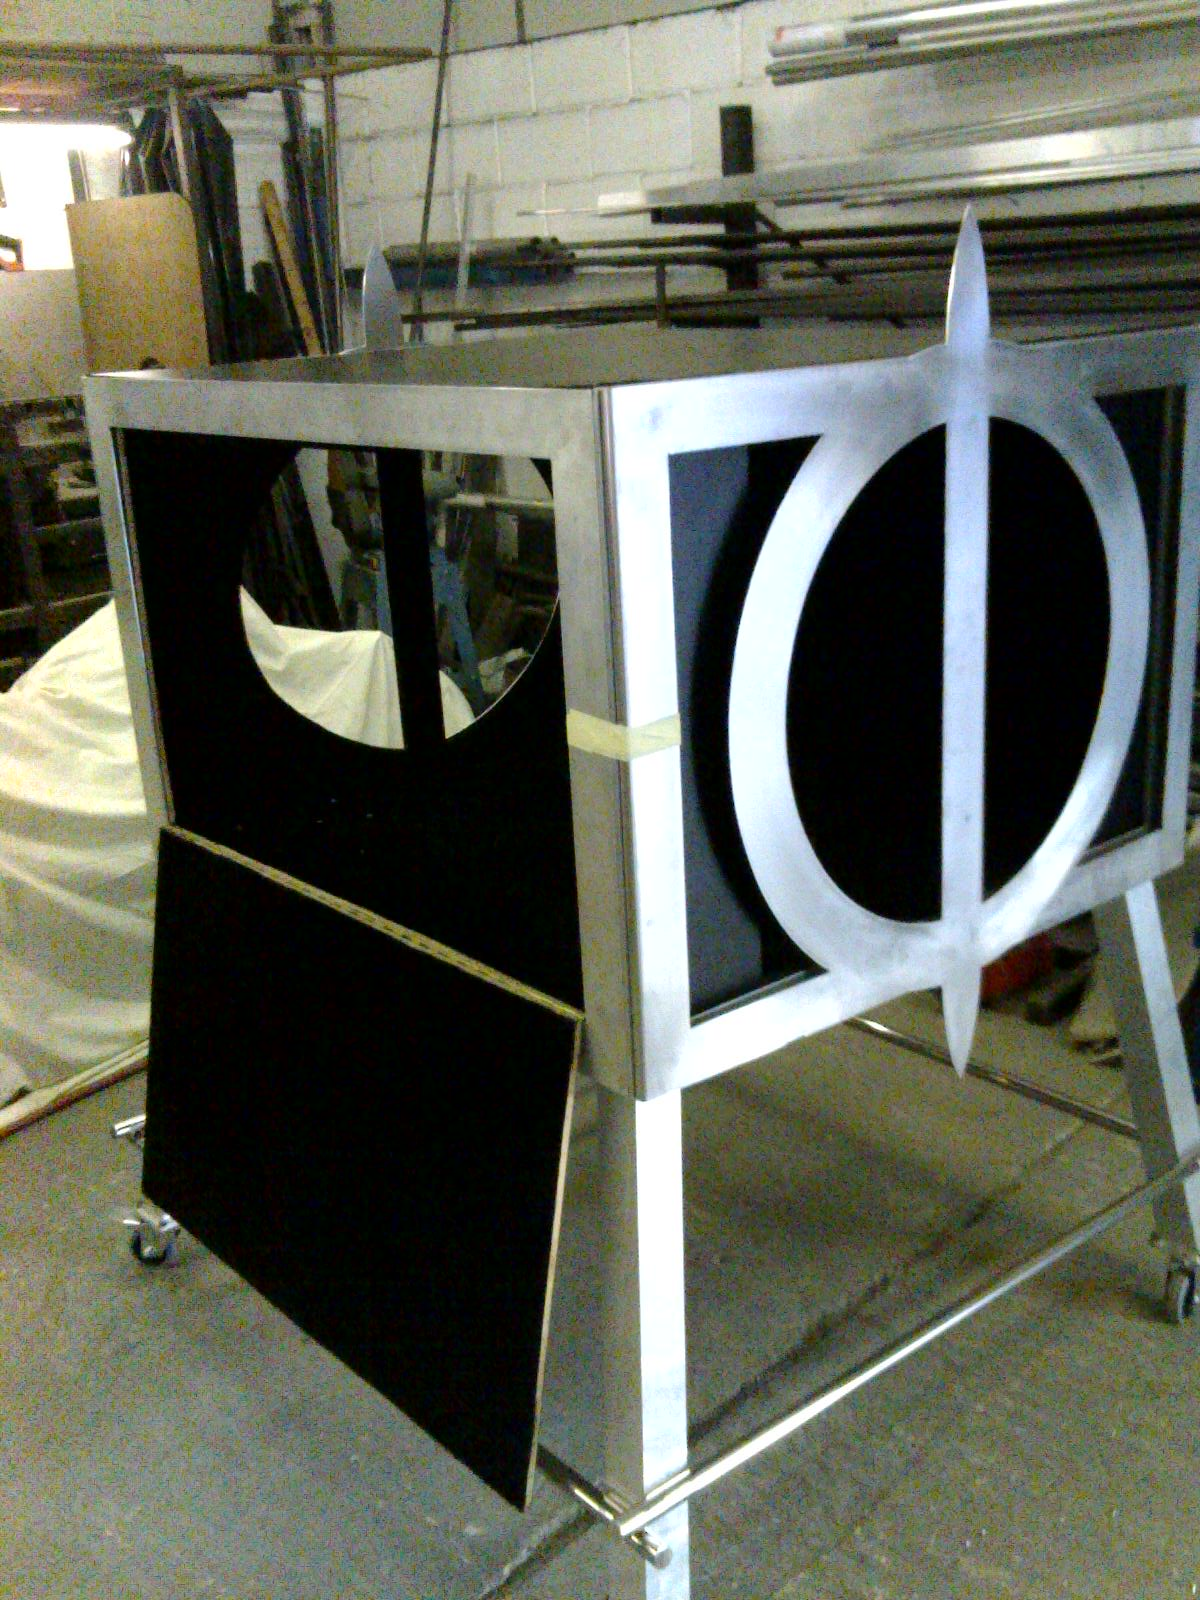 Illusion fabrication in workshop